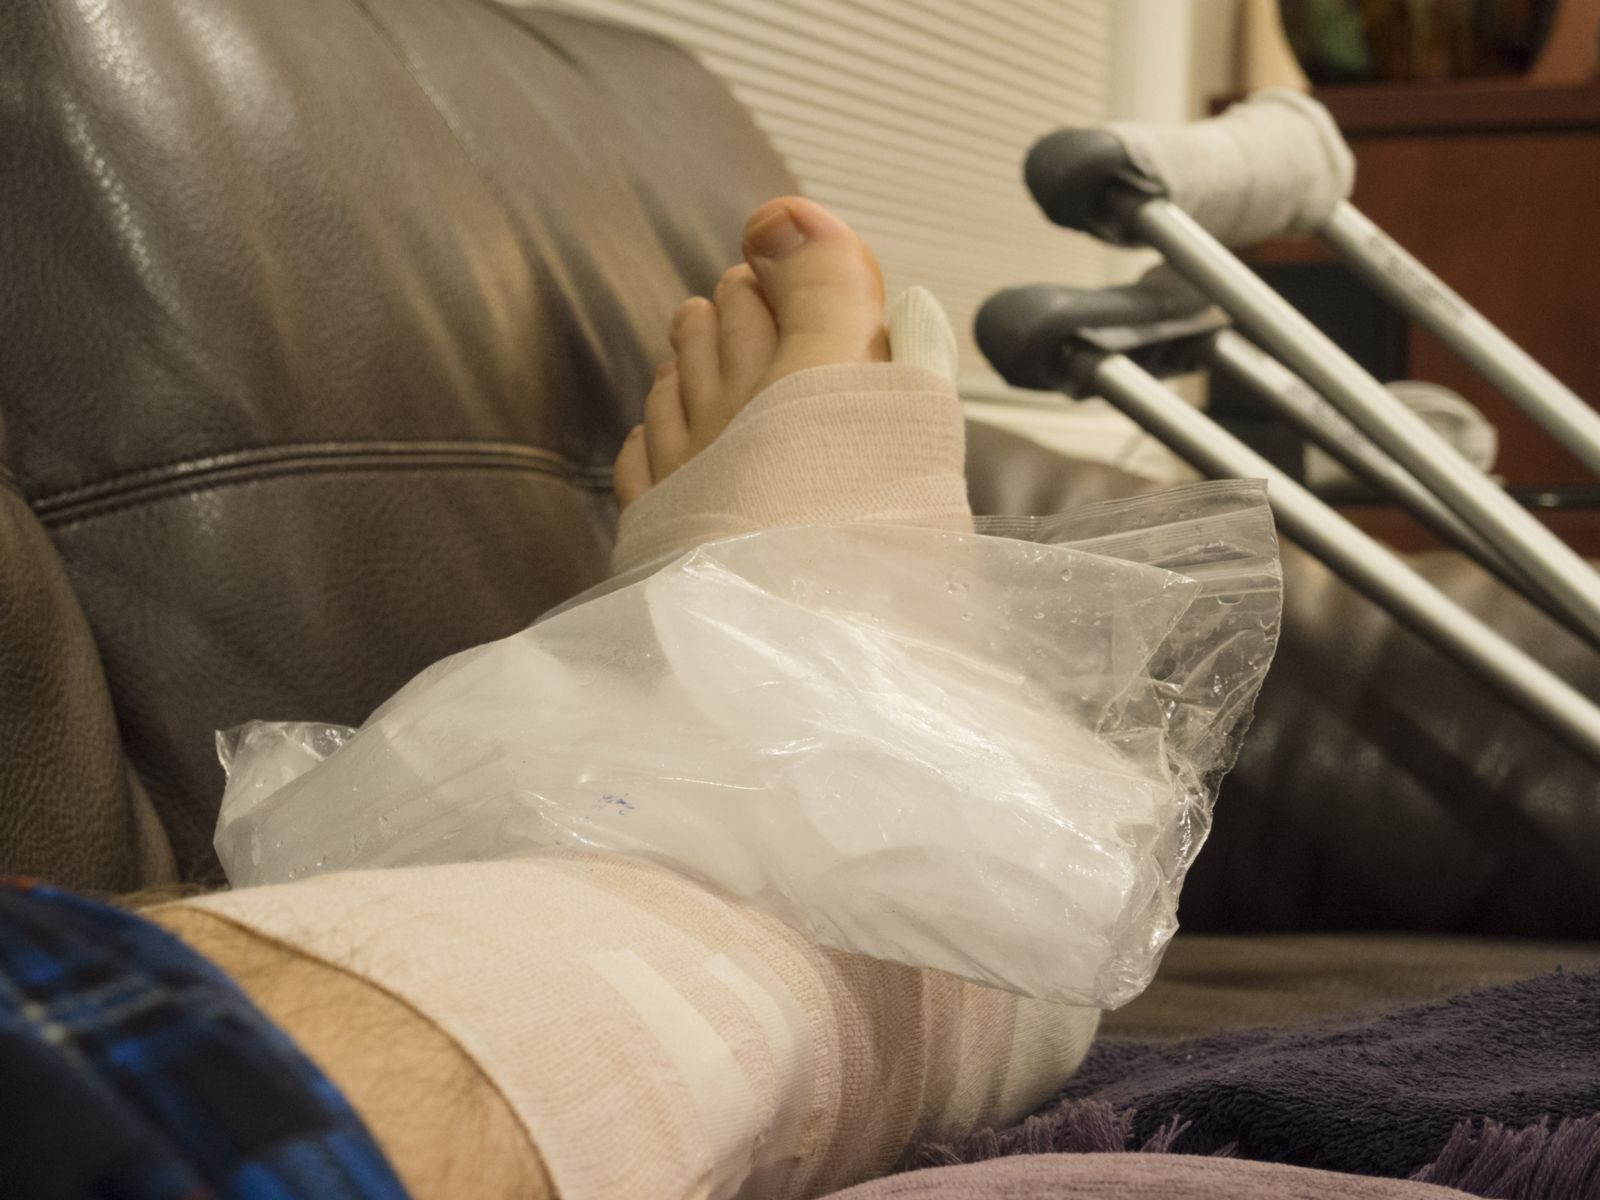 foot up with ice pack and crutches